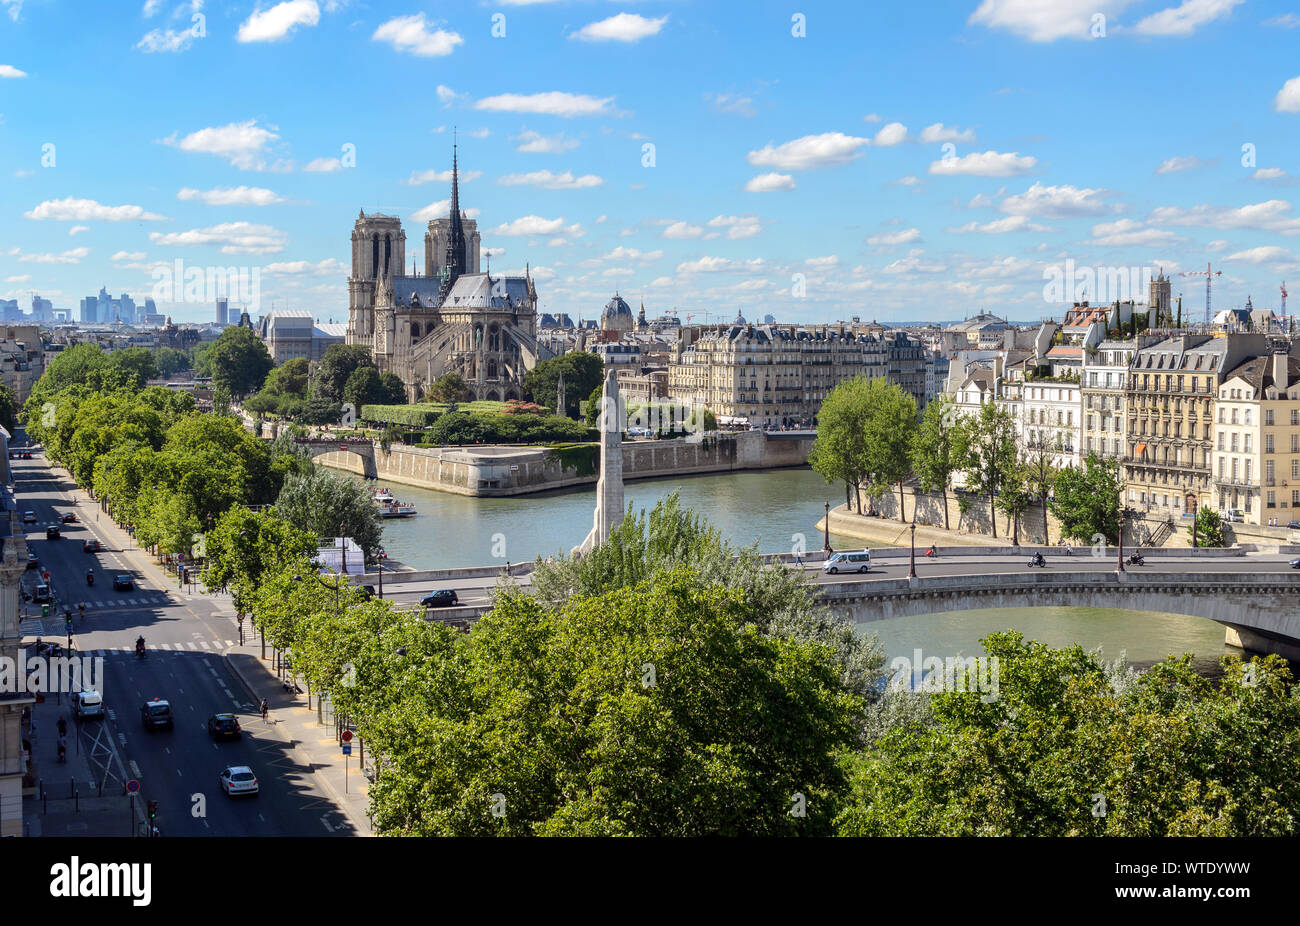 Top view of Paris taken from The Arab World Institute. The Pont de la Tournelle bridge spanning the river Seine, Notre-Dame Cathedral are observable. Stock Photo